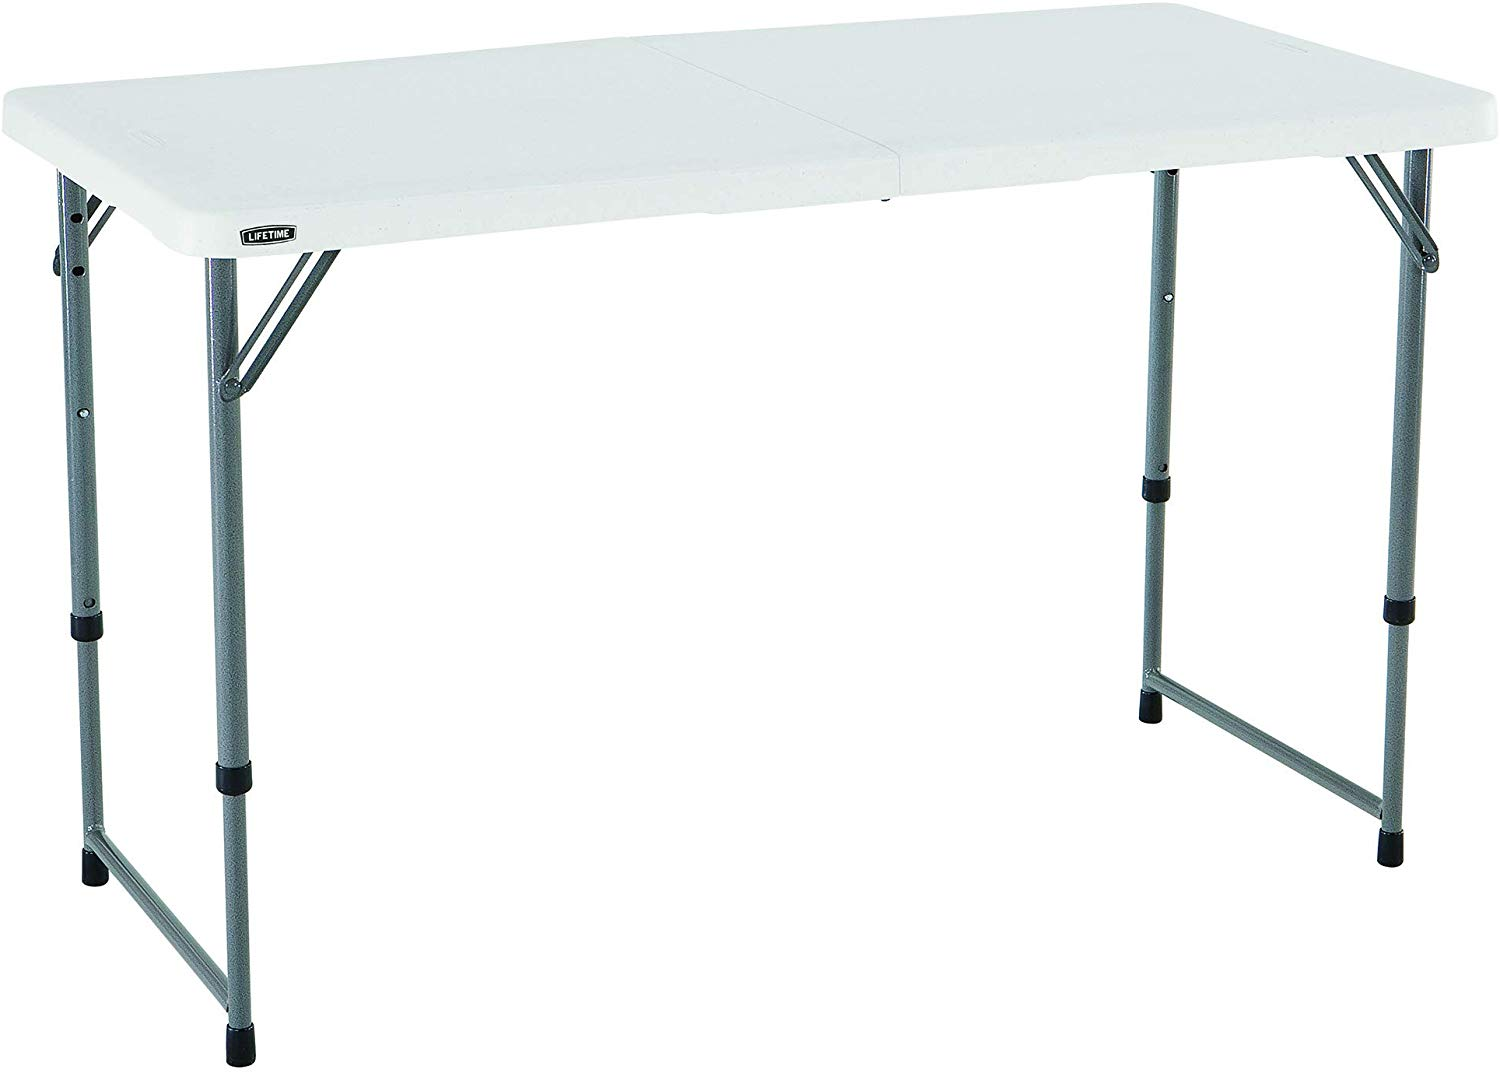 Lifetime 4428 Height Adjustable Craft Camping and Utility Folding Table